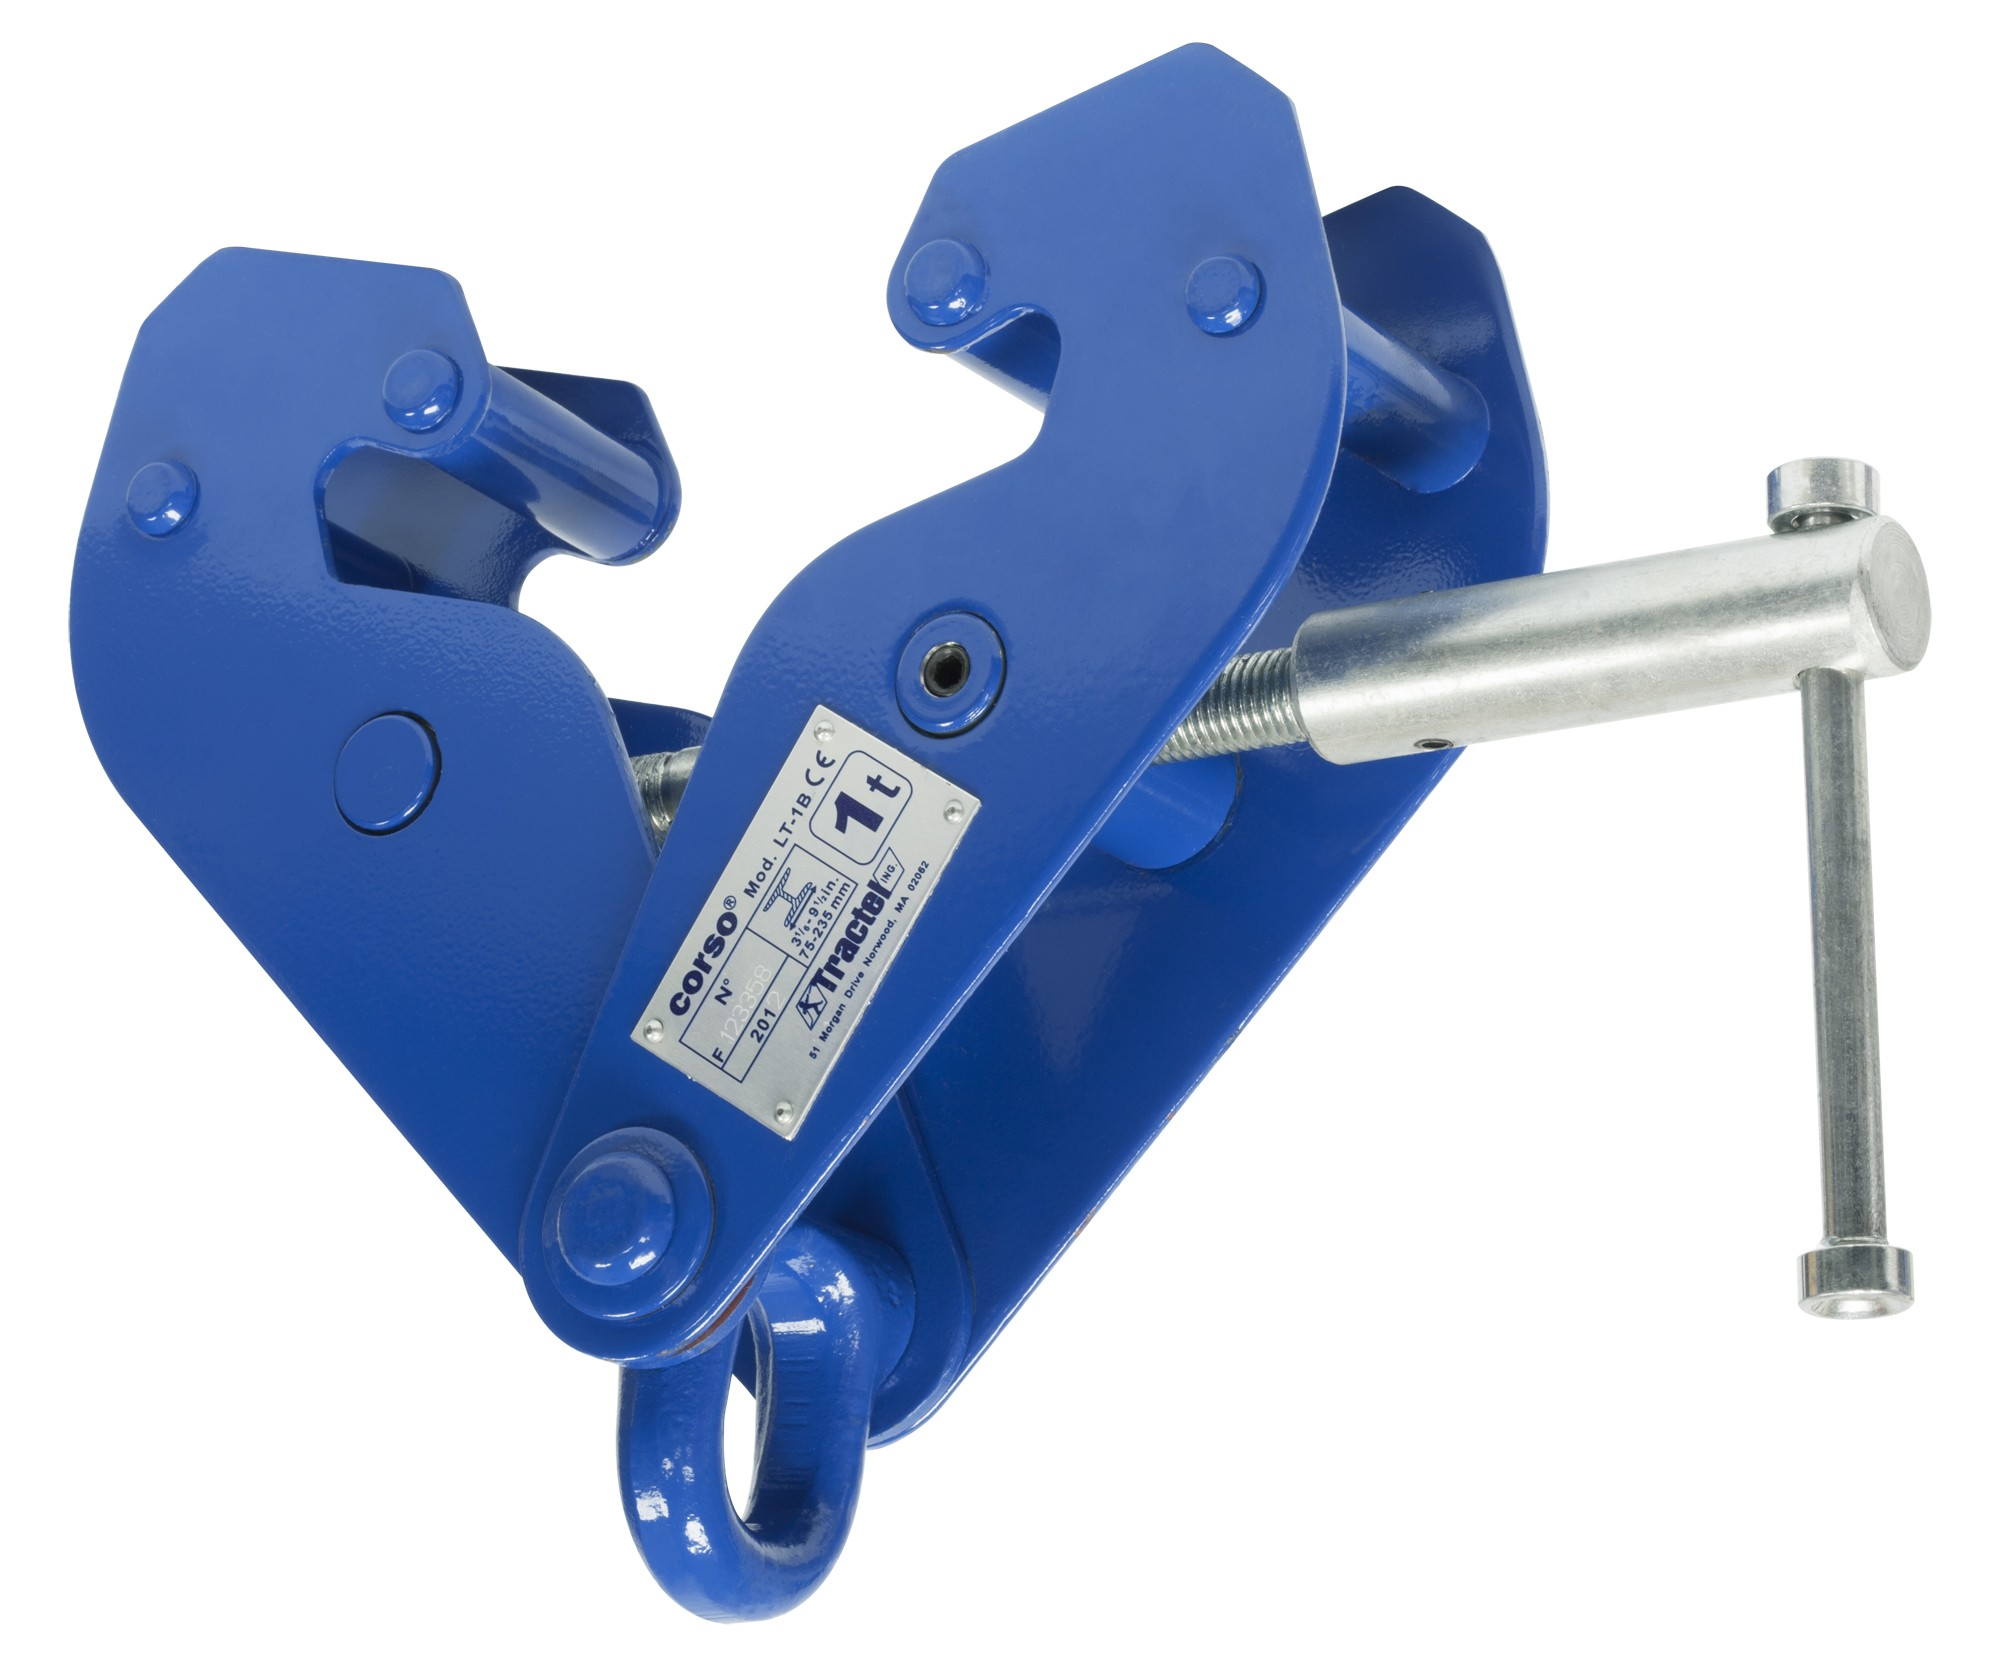 TRACTEL BEAM CLAMP: 1 TON BEAM CLAMP w/LIFTING EYE